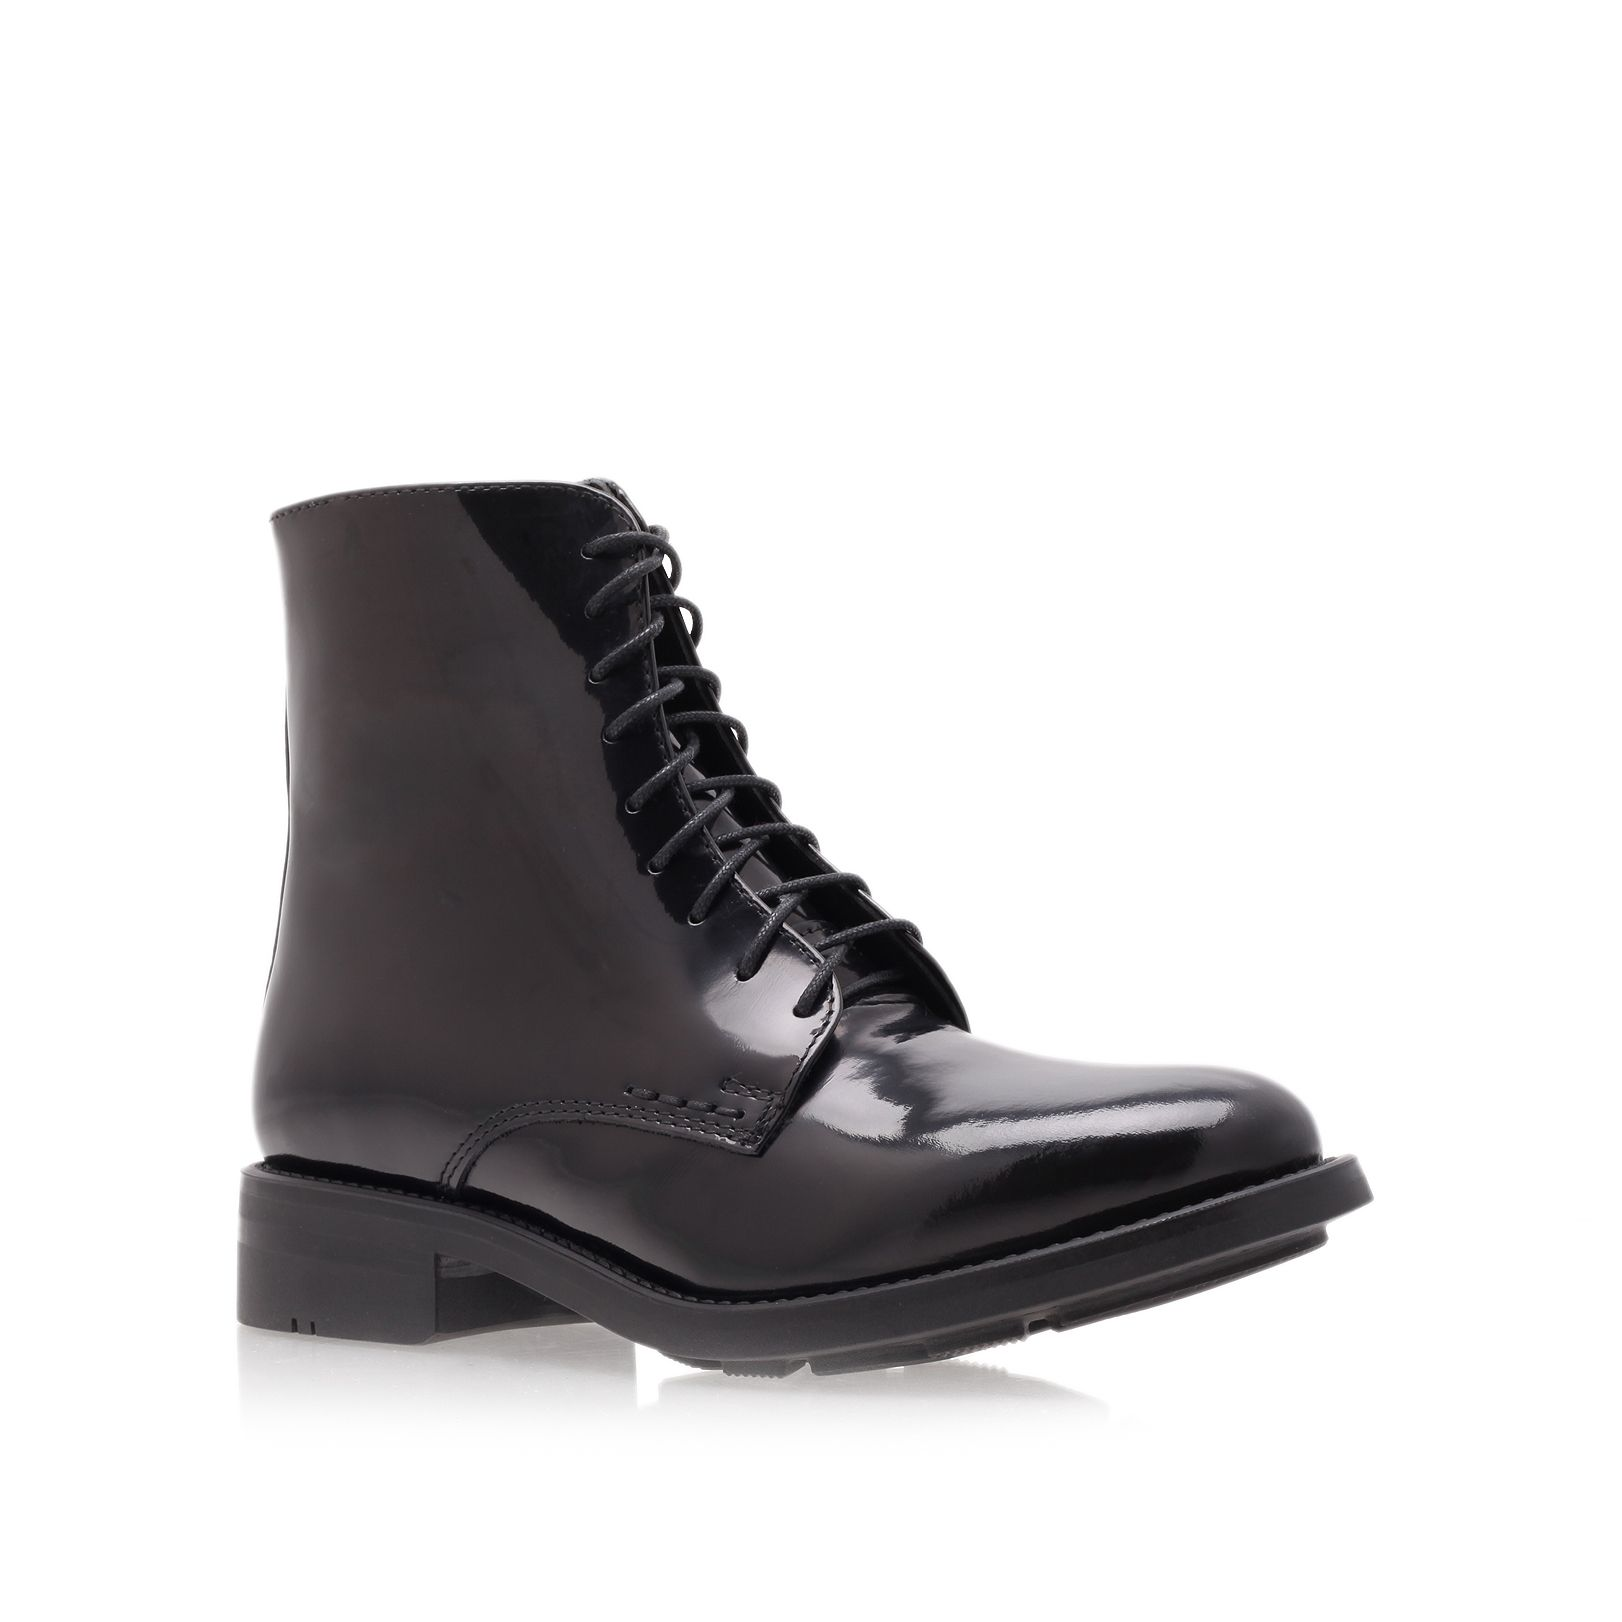 Spencer lace up boots